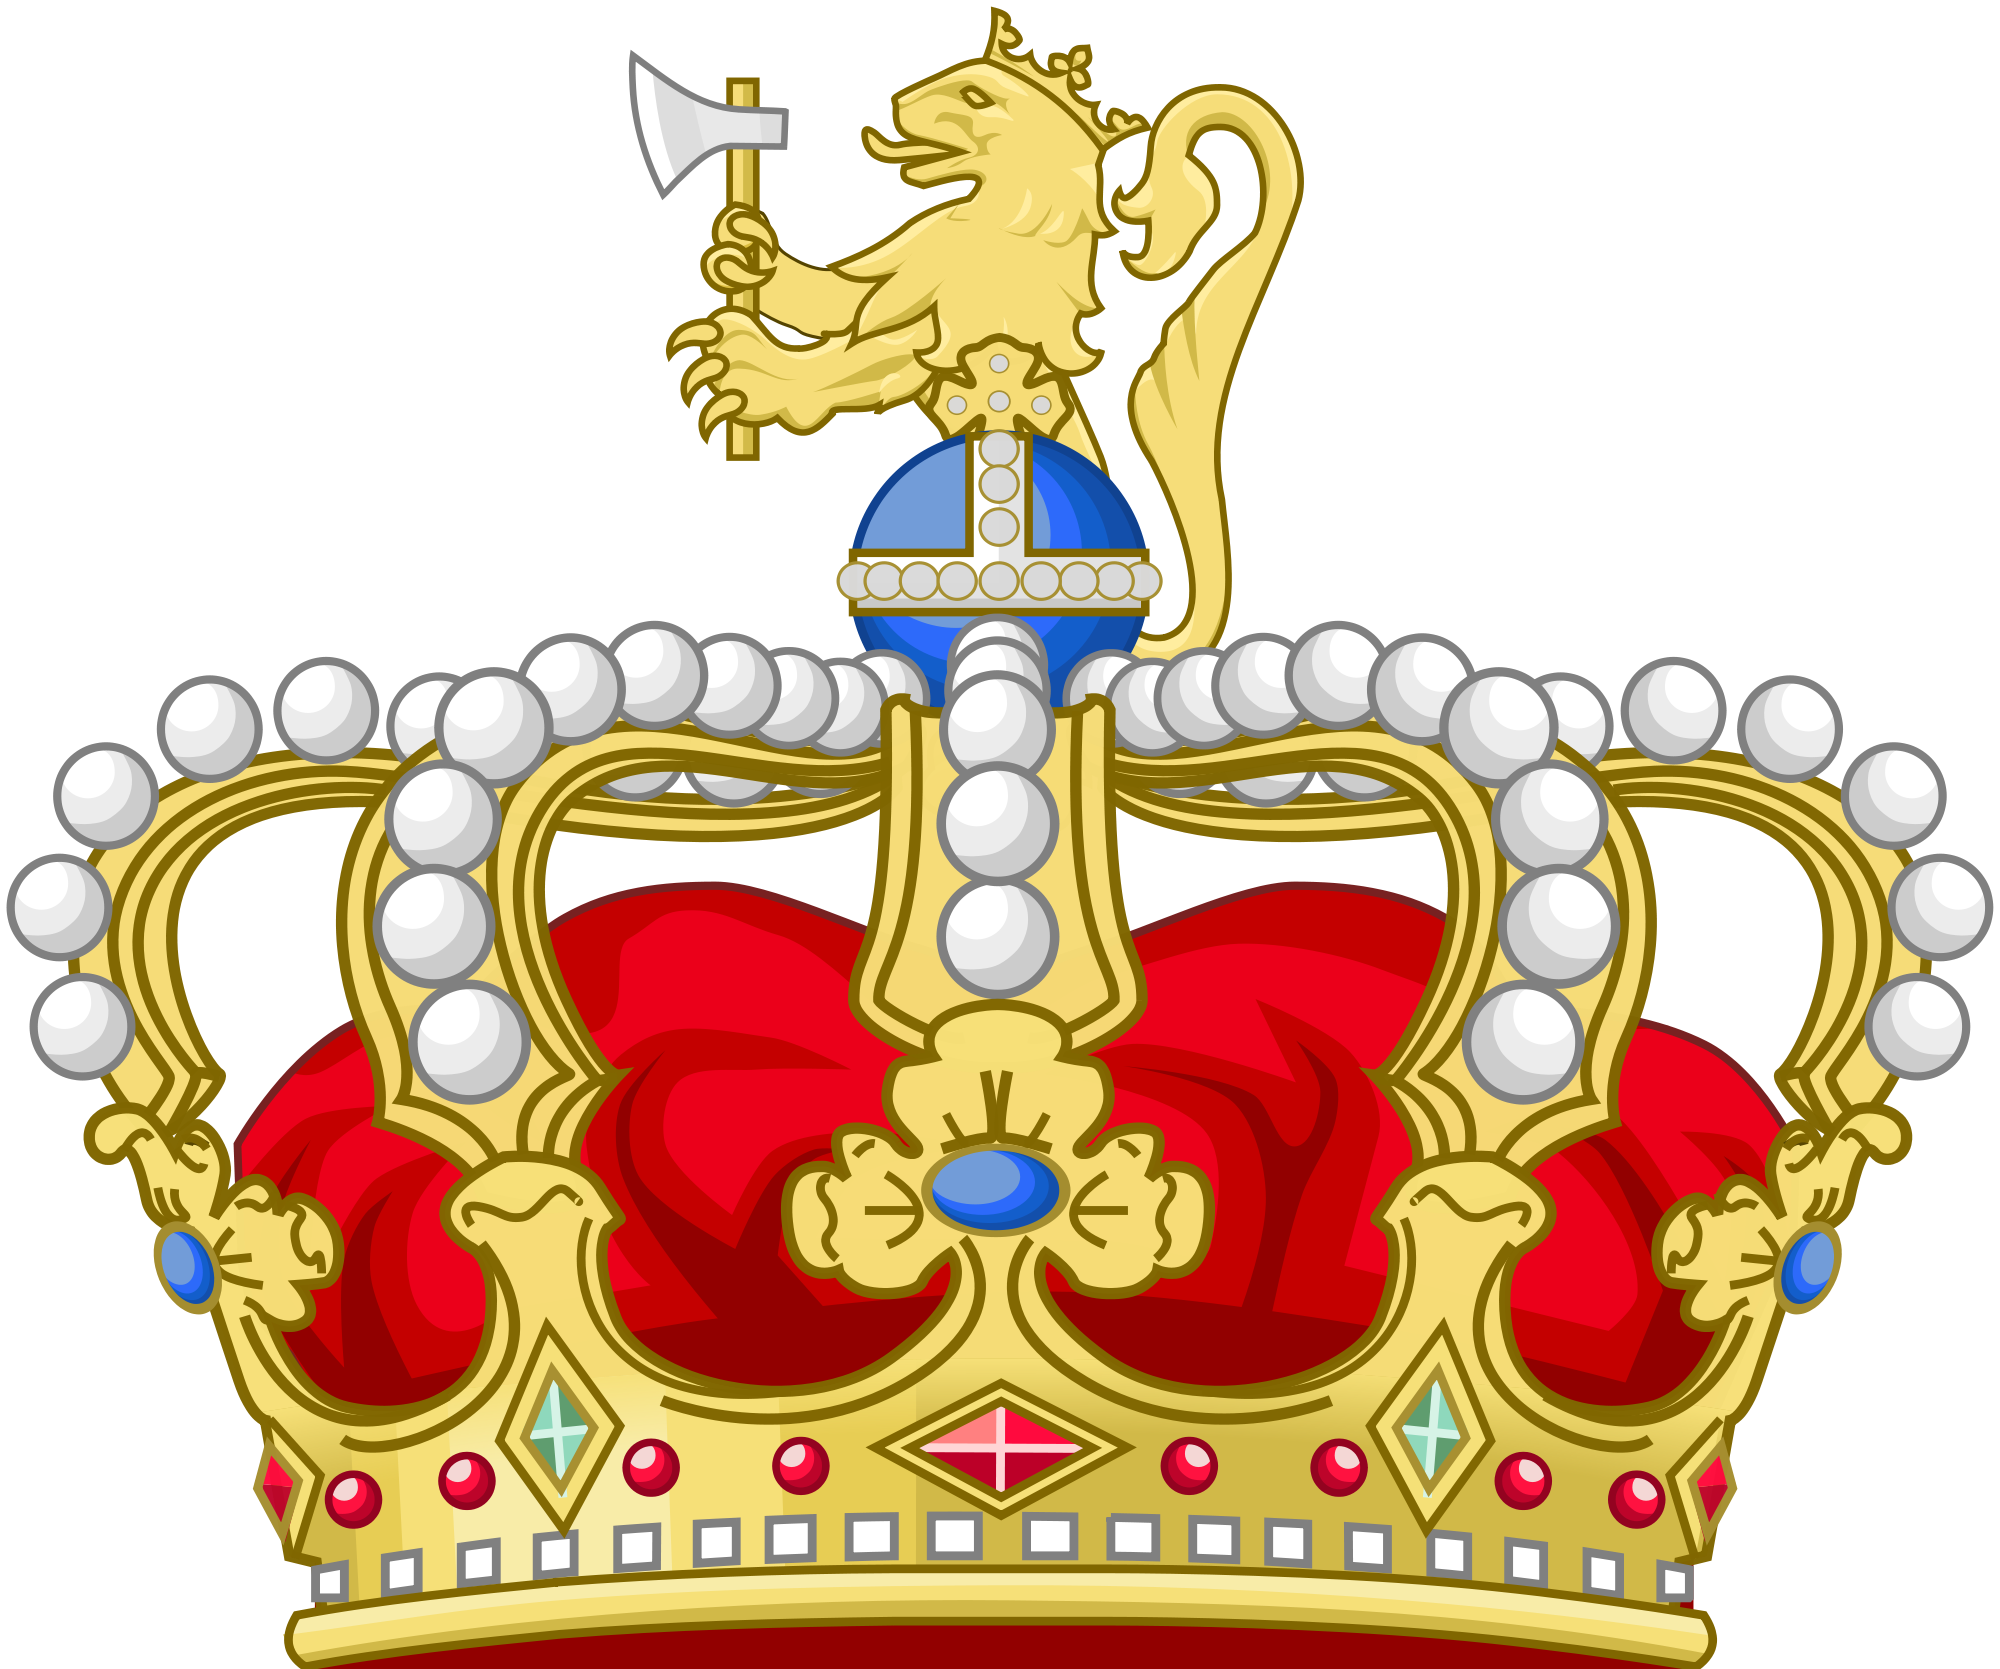 Crown of castile cat clipart small picture vector free download Heraldic crown of the King of Norway | Crowns | Pinterest vector free download